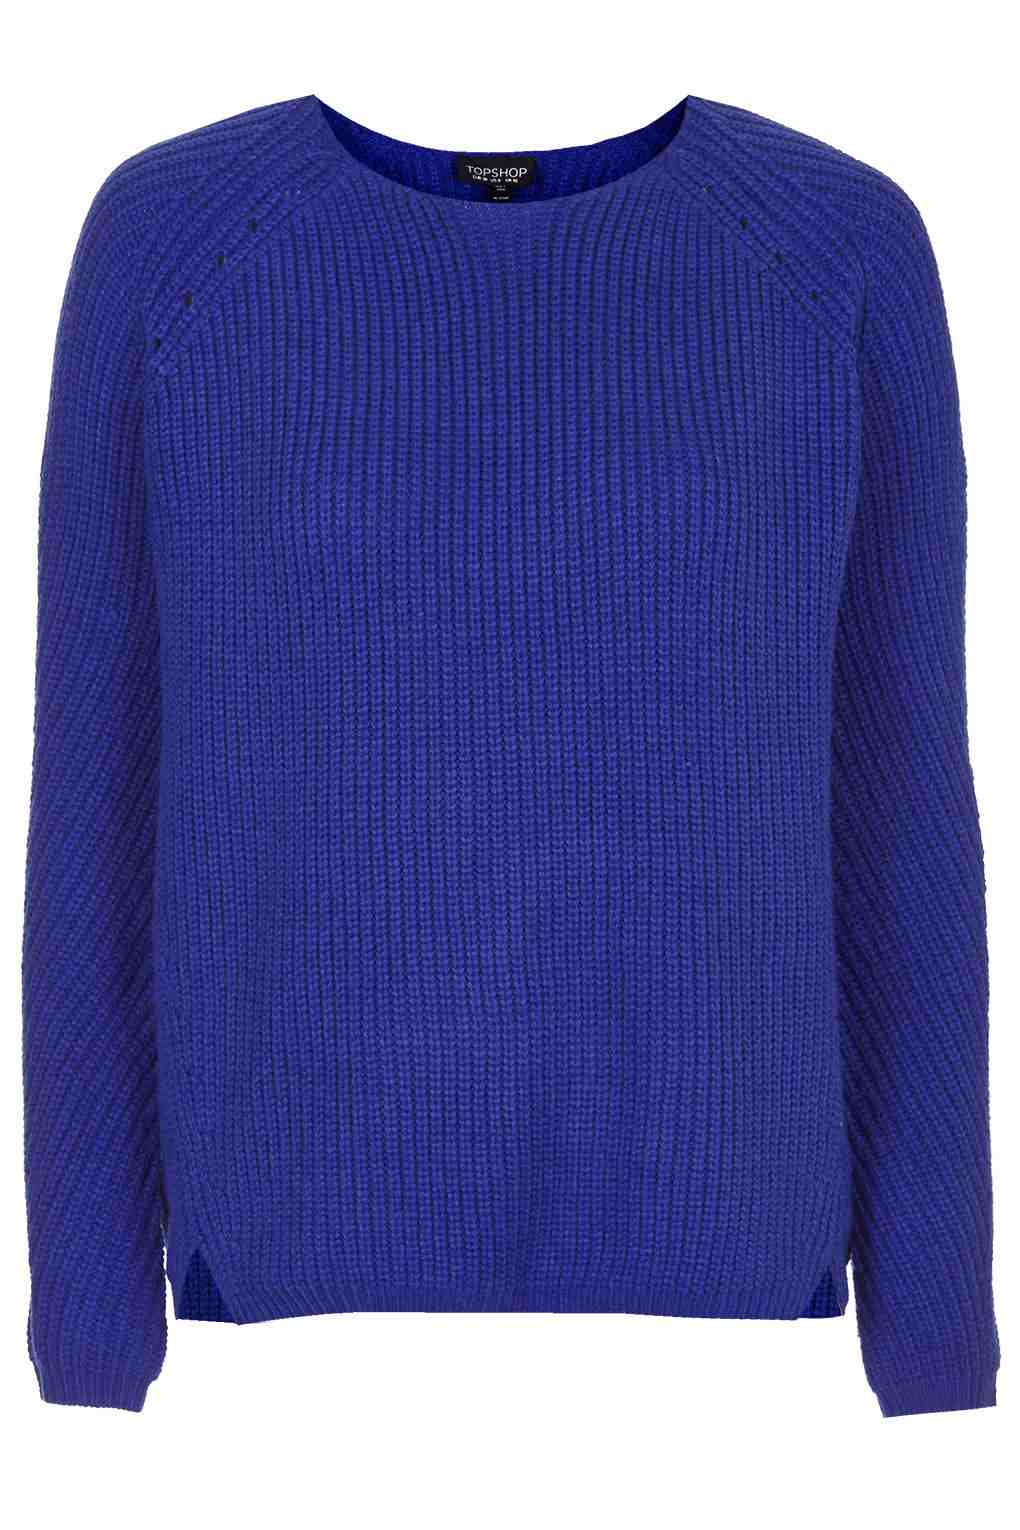 Topshop - Pull(50 €)